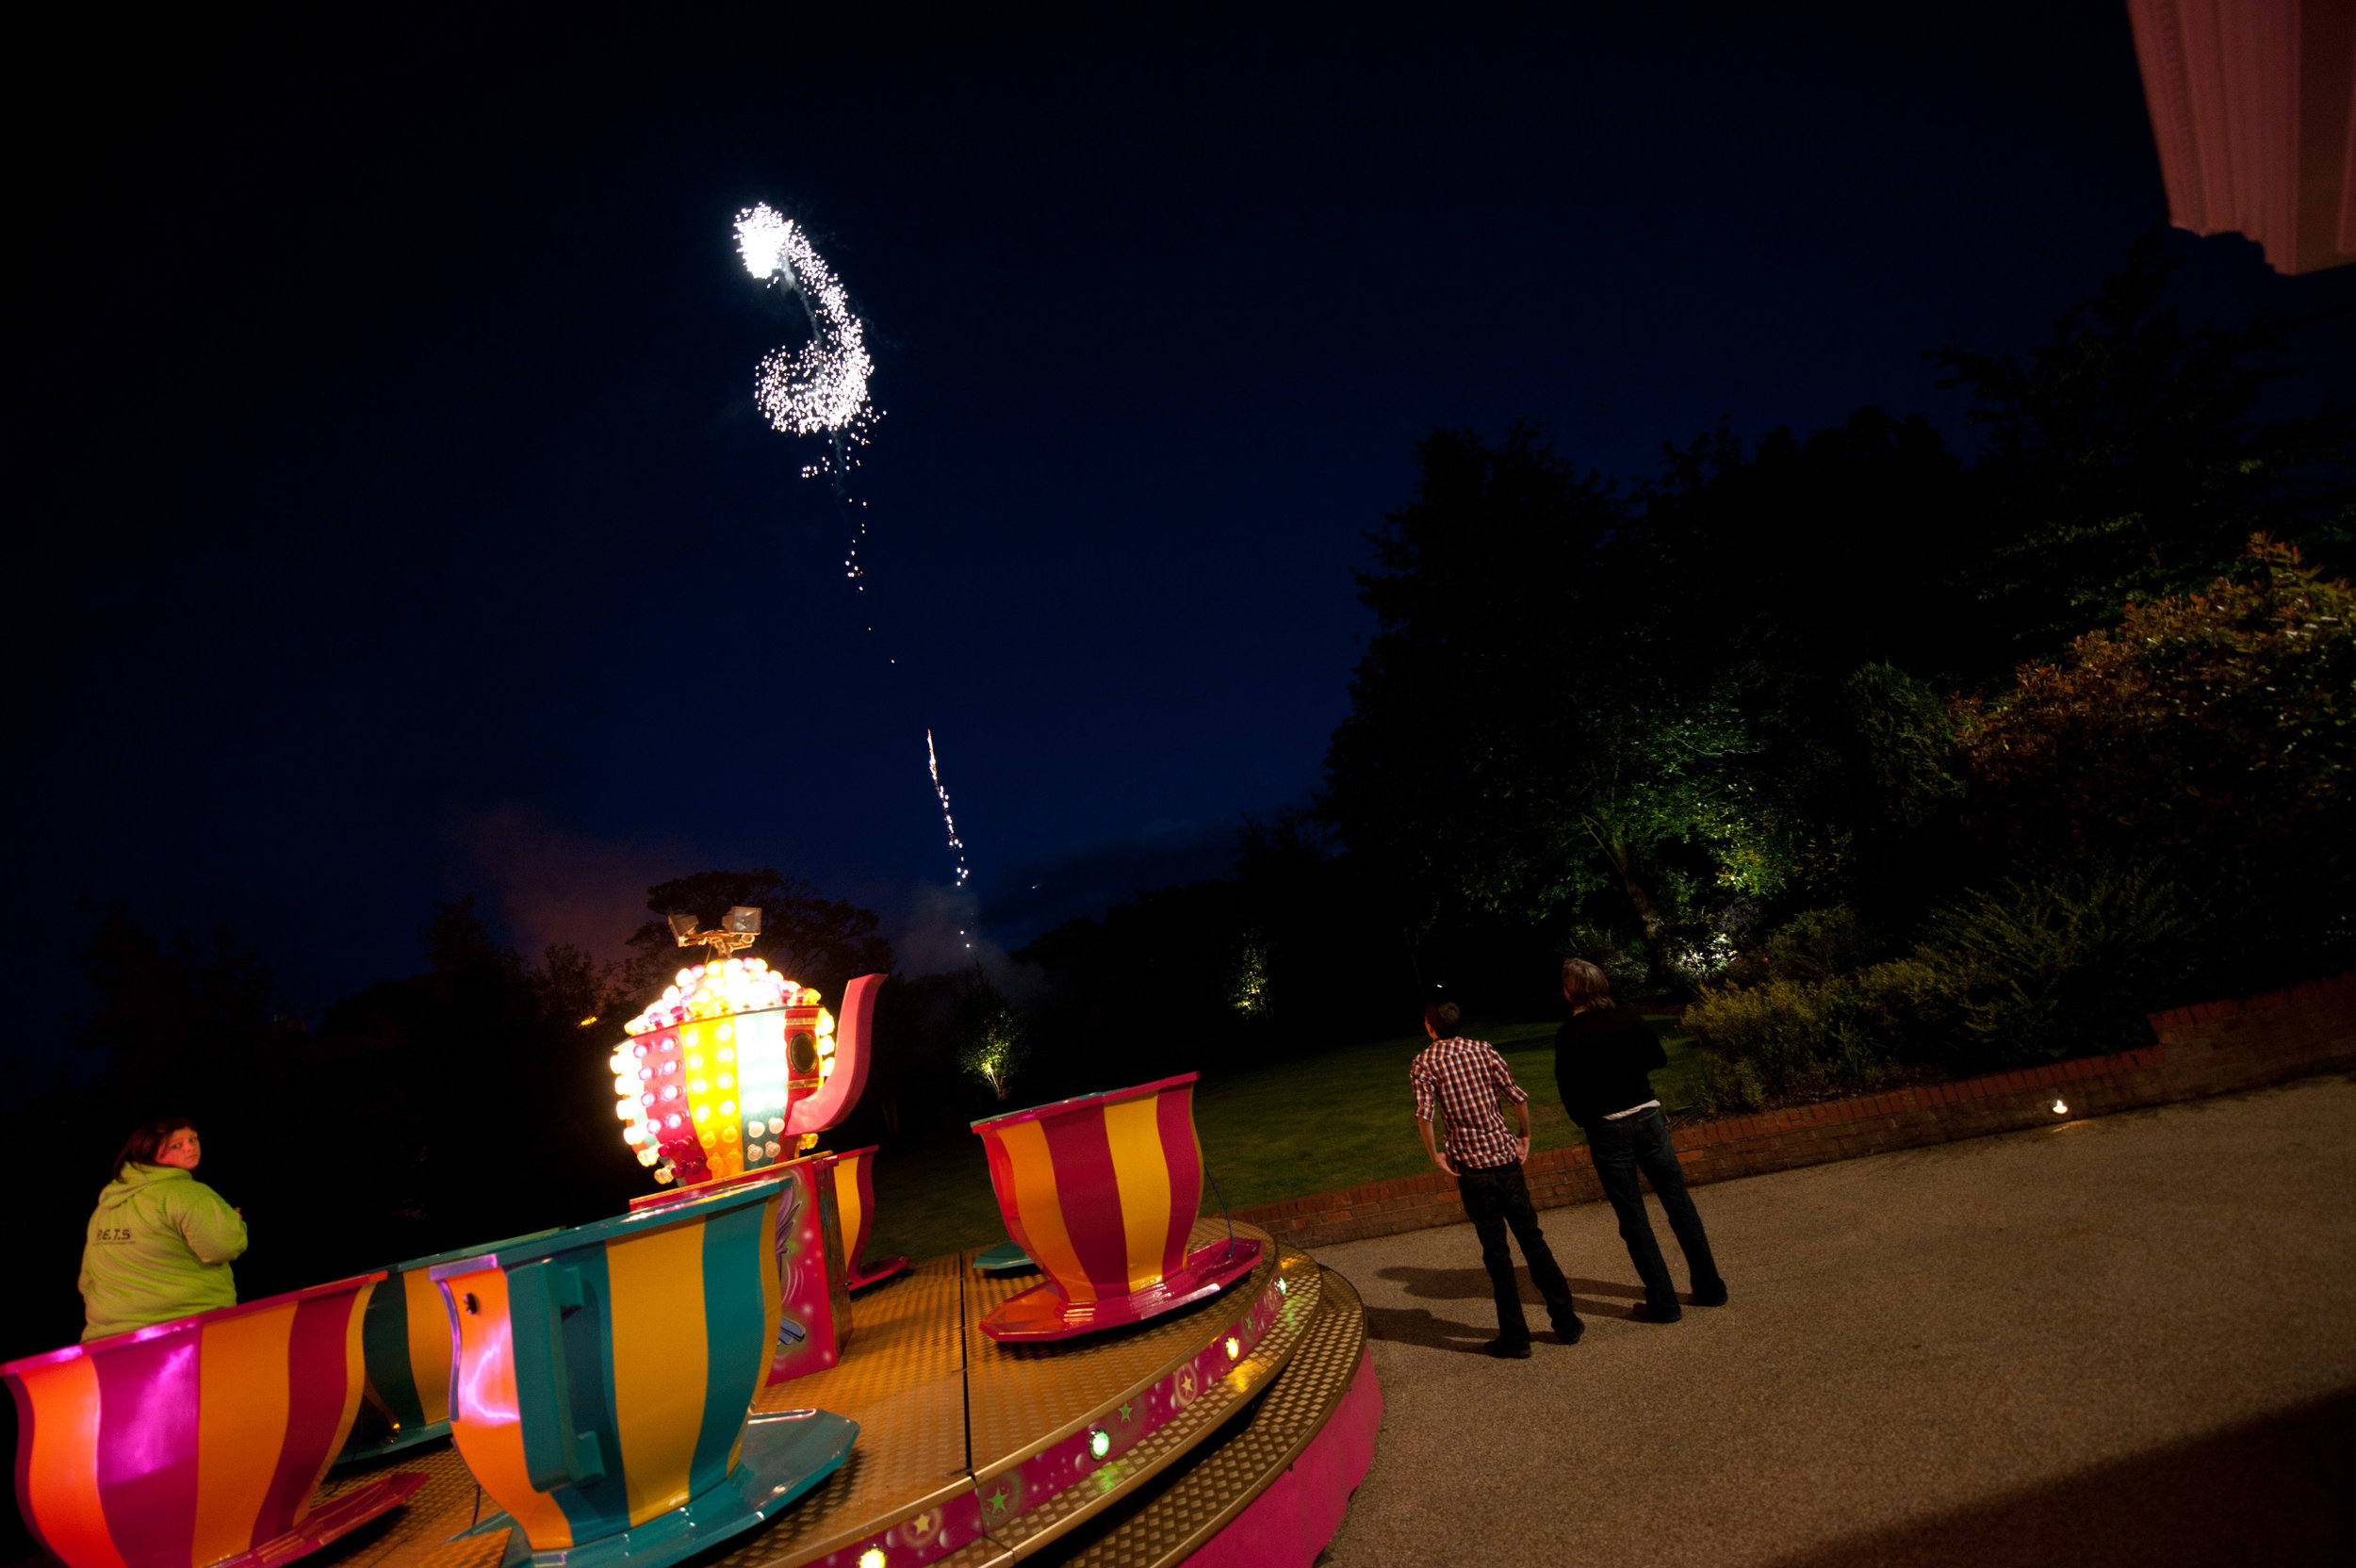 T cup ride fireworks.jpg